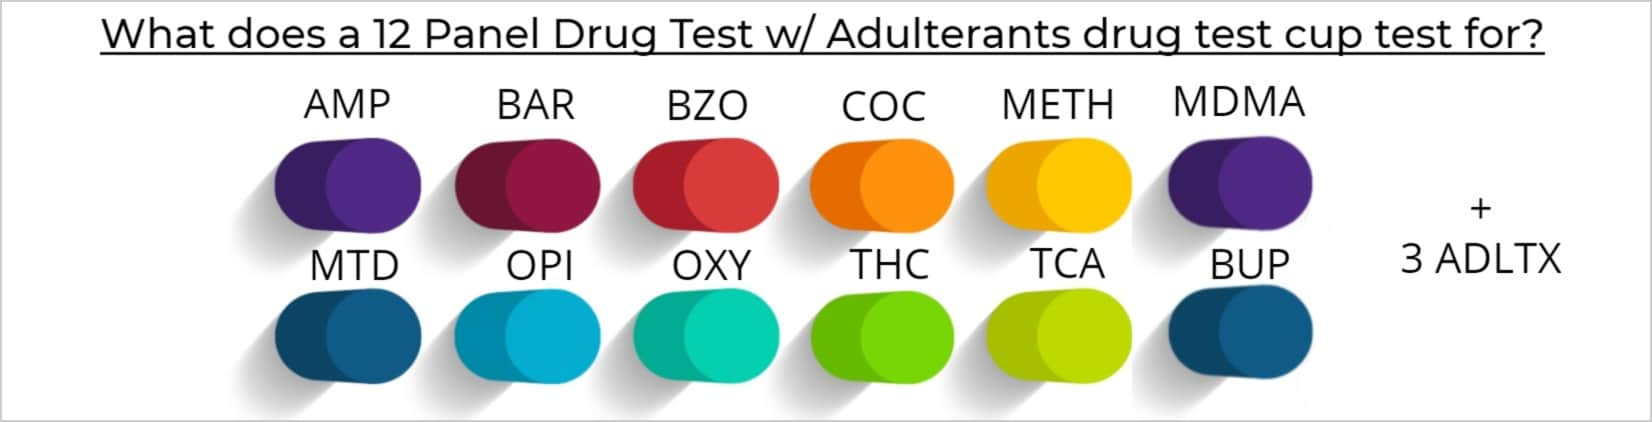 What does a 12 Panel Drug Test w_ Adulterants drug test cup test for